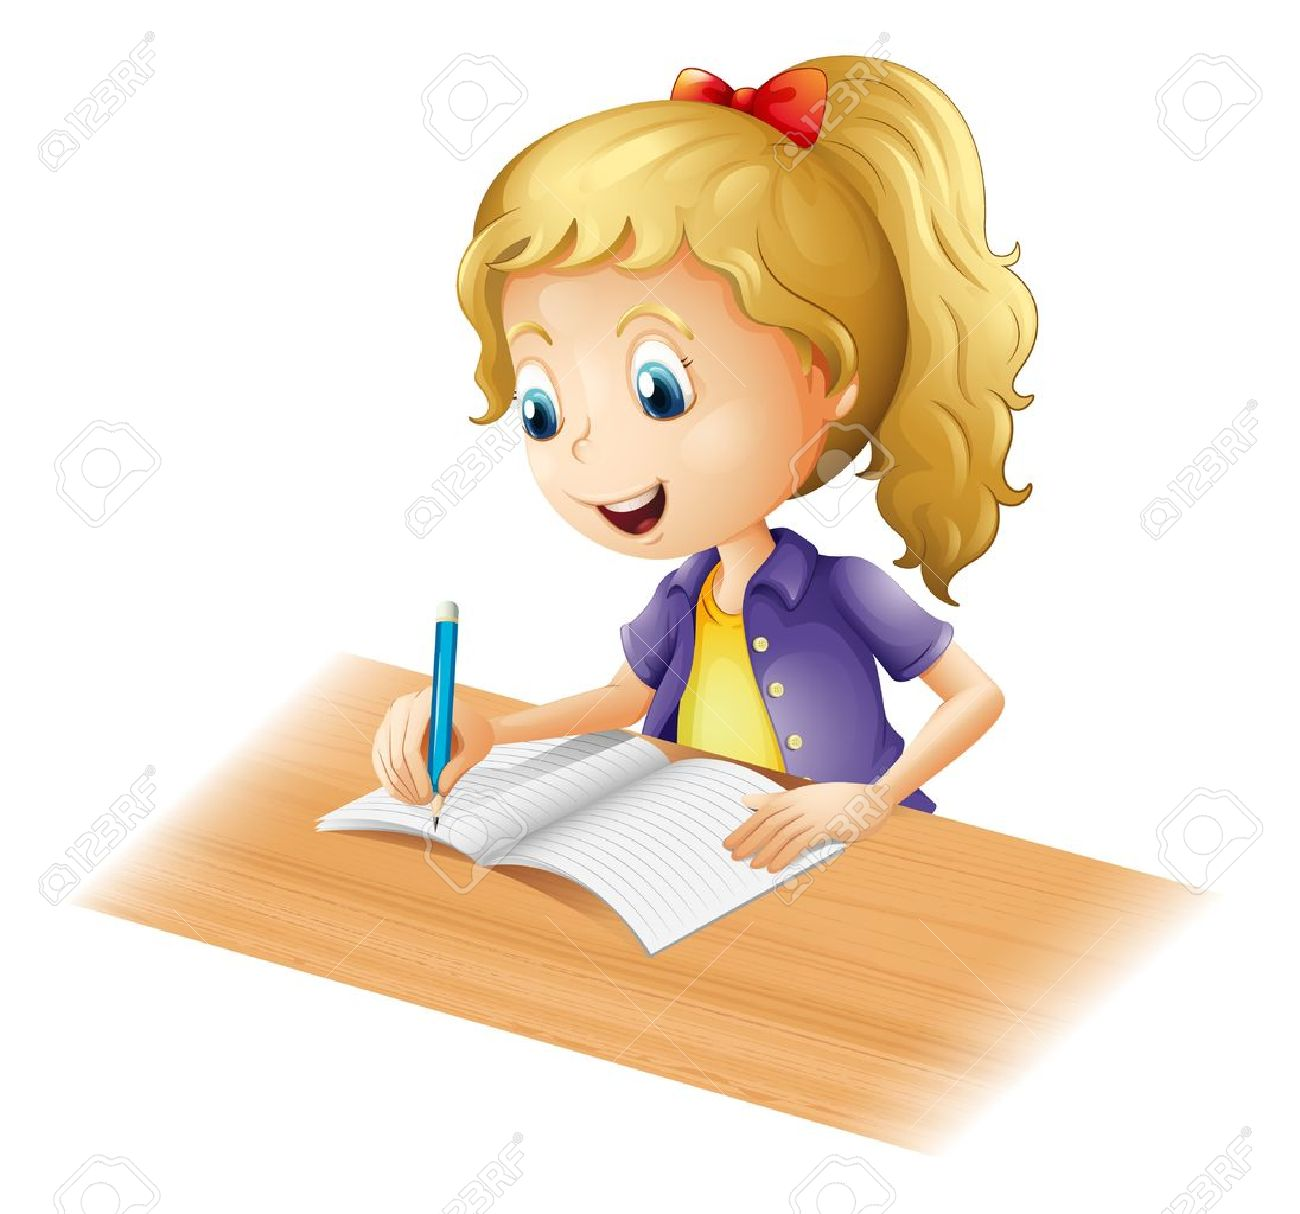 homework assignment cliparts stock vector and royalty homework assignment illustration of a young girl writing on a white background